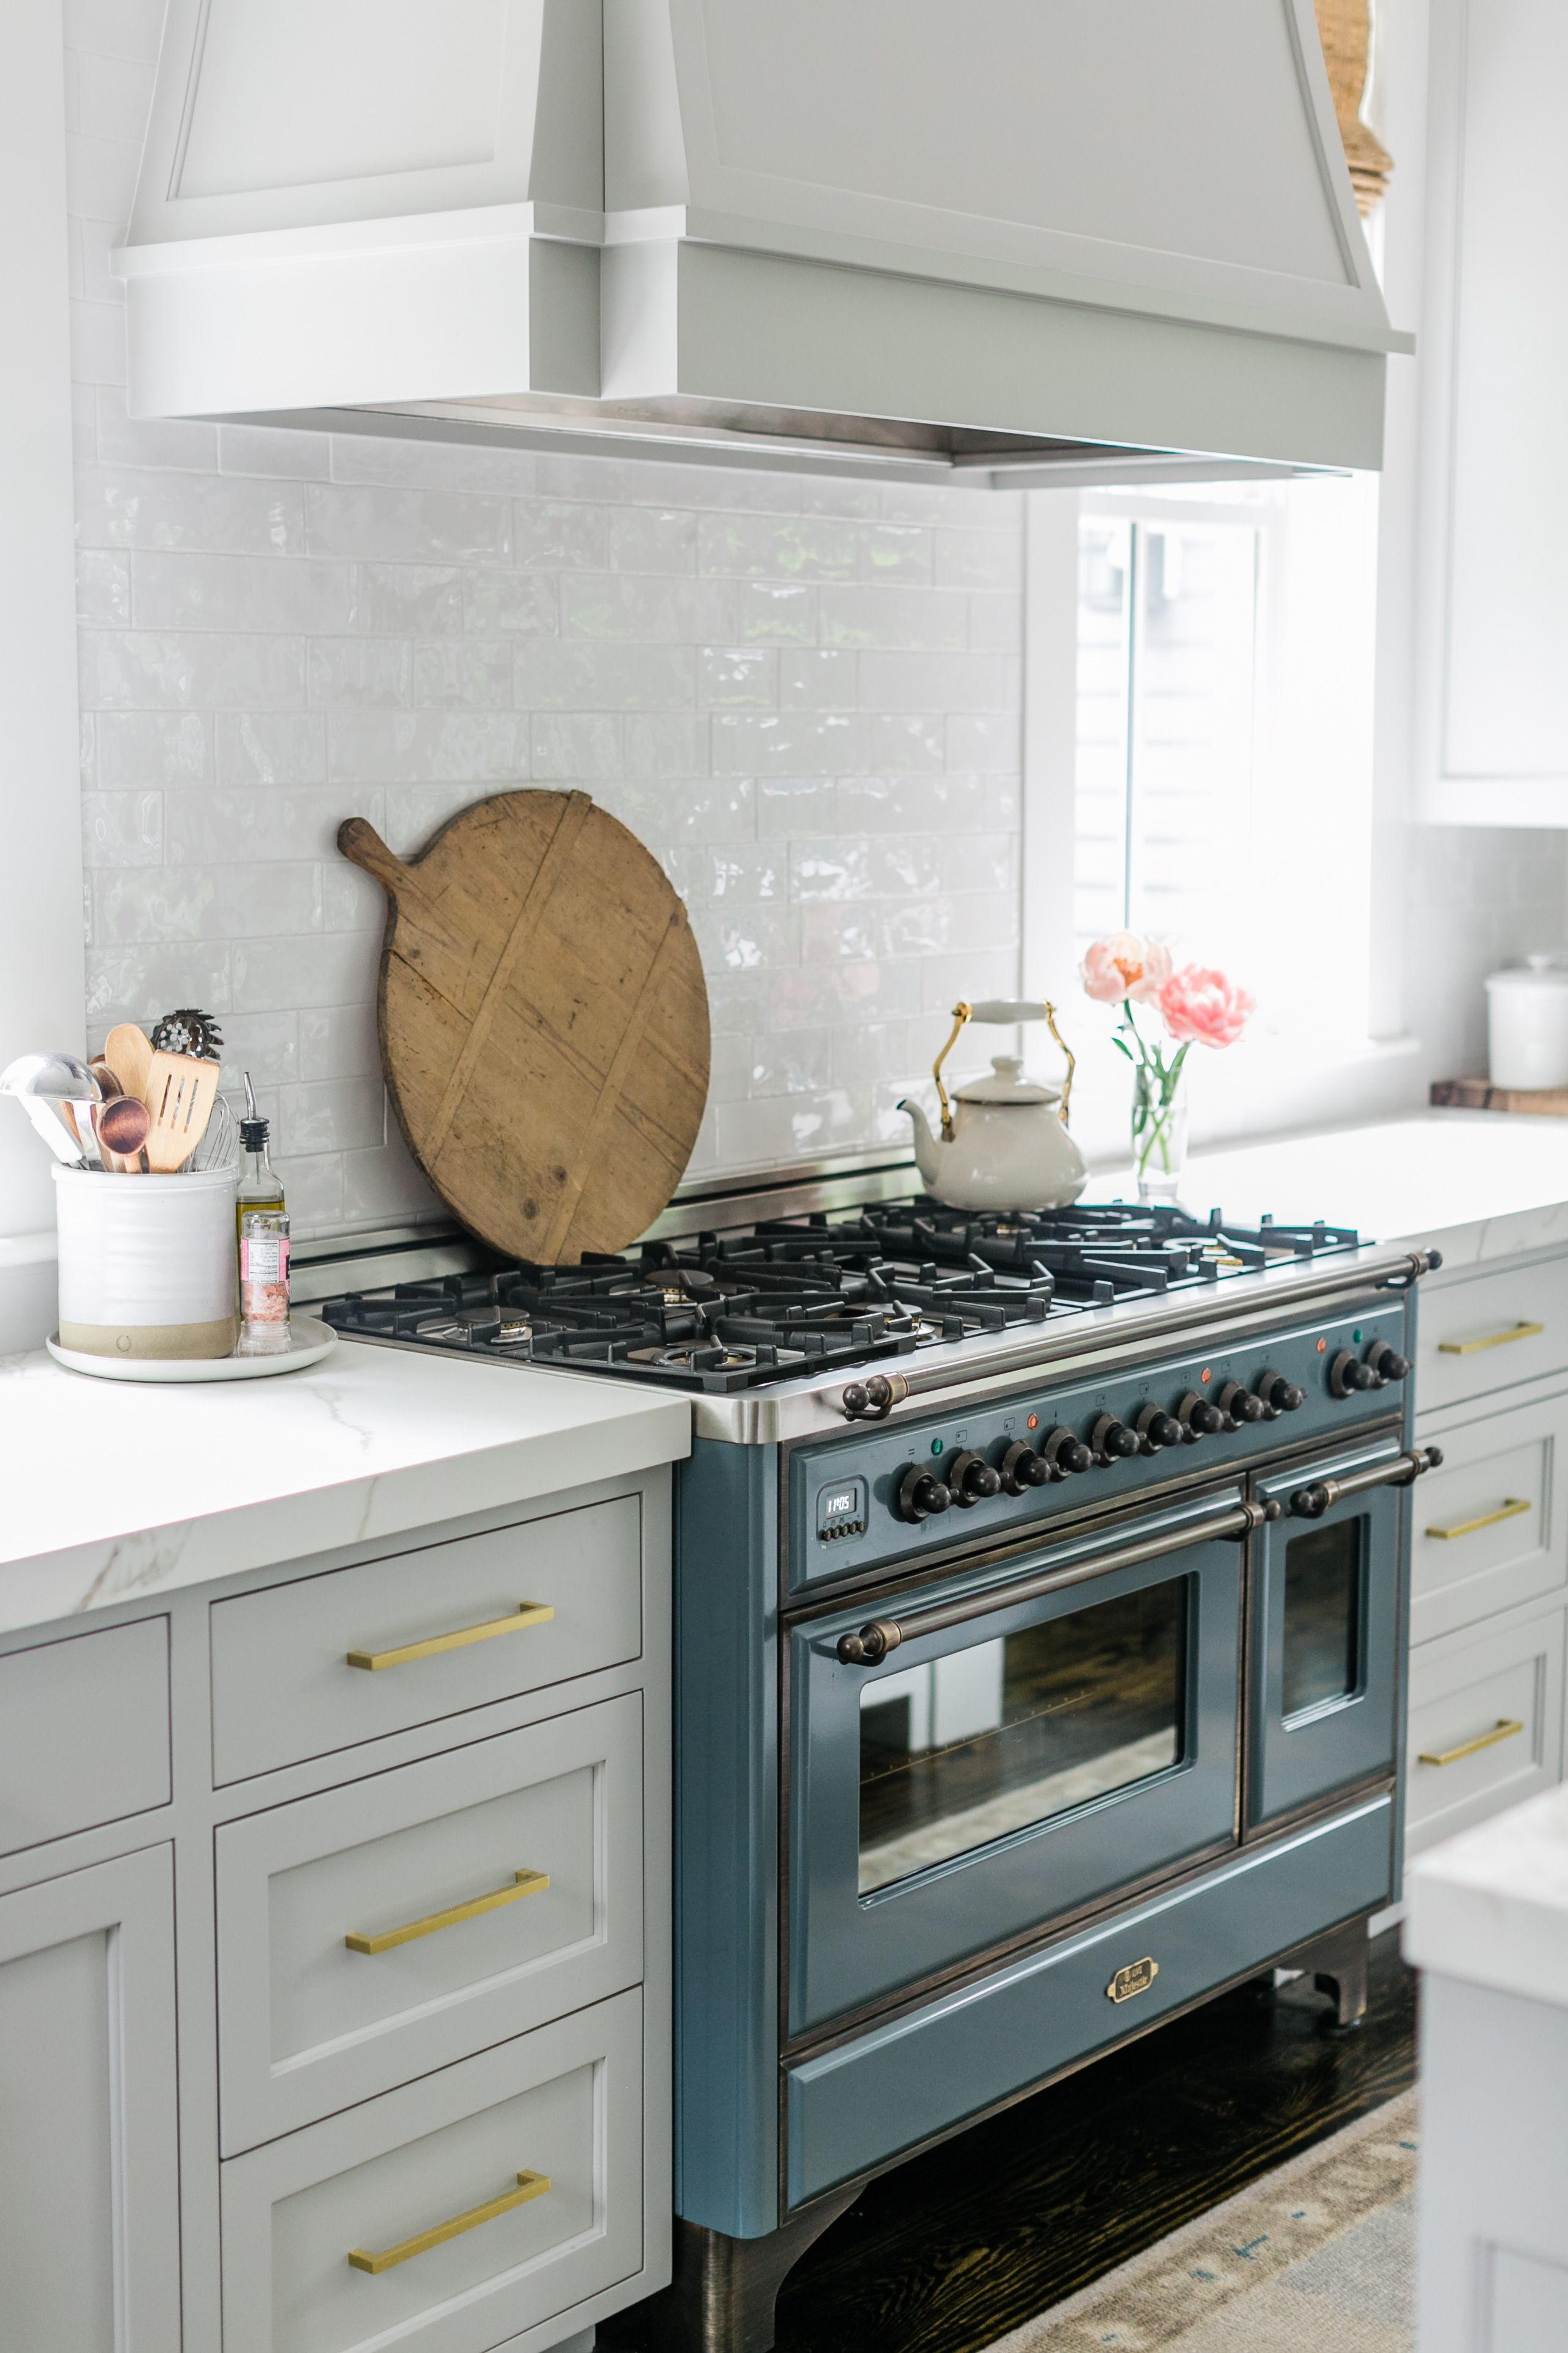 Findinglovely Com Love The Pale Gray Cabinets And That Blue Stove